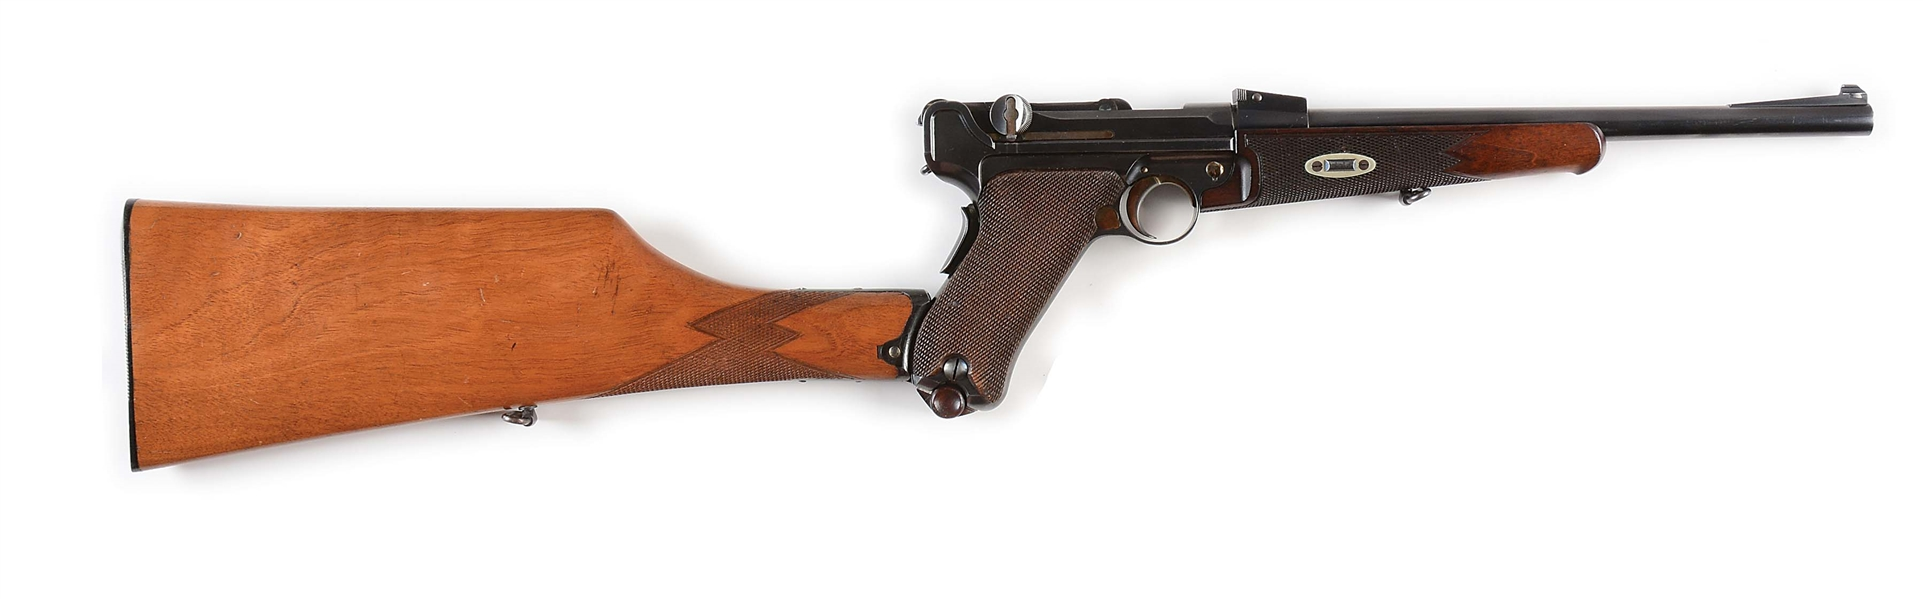 (C) 1902 LUGER CARBINE WITH STOCK.